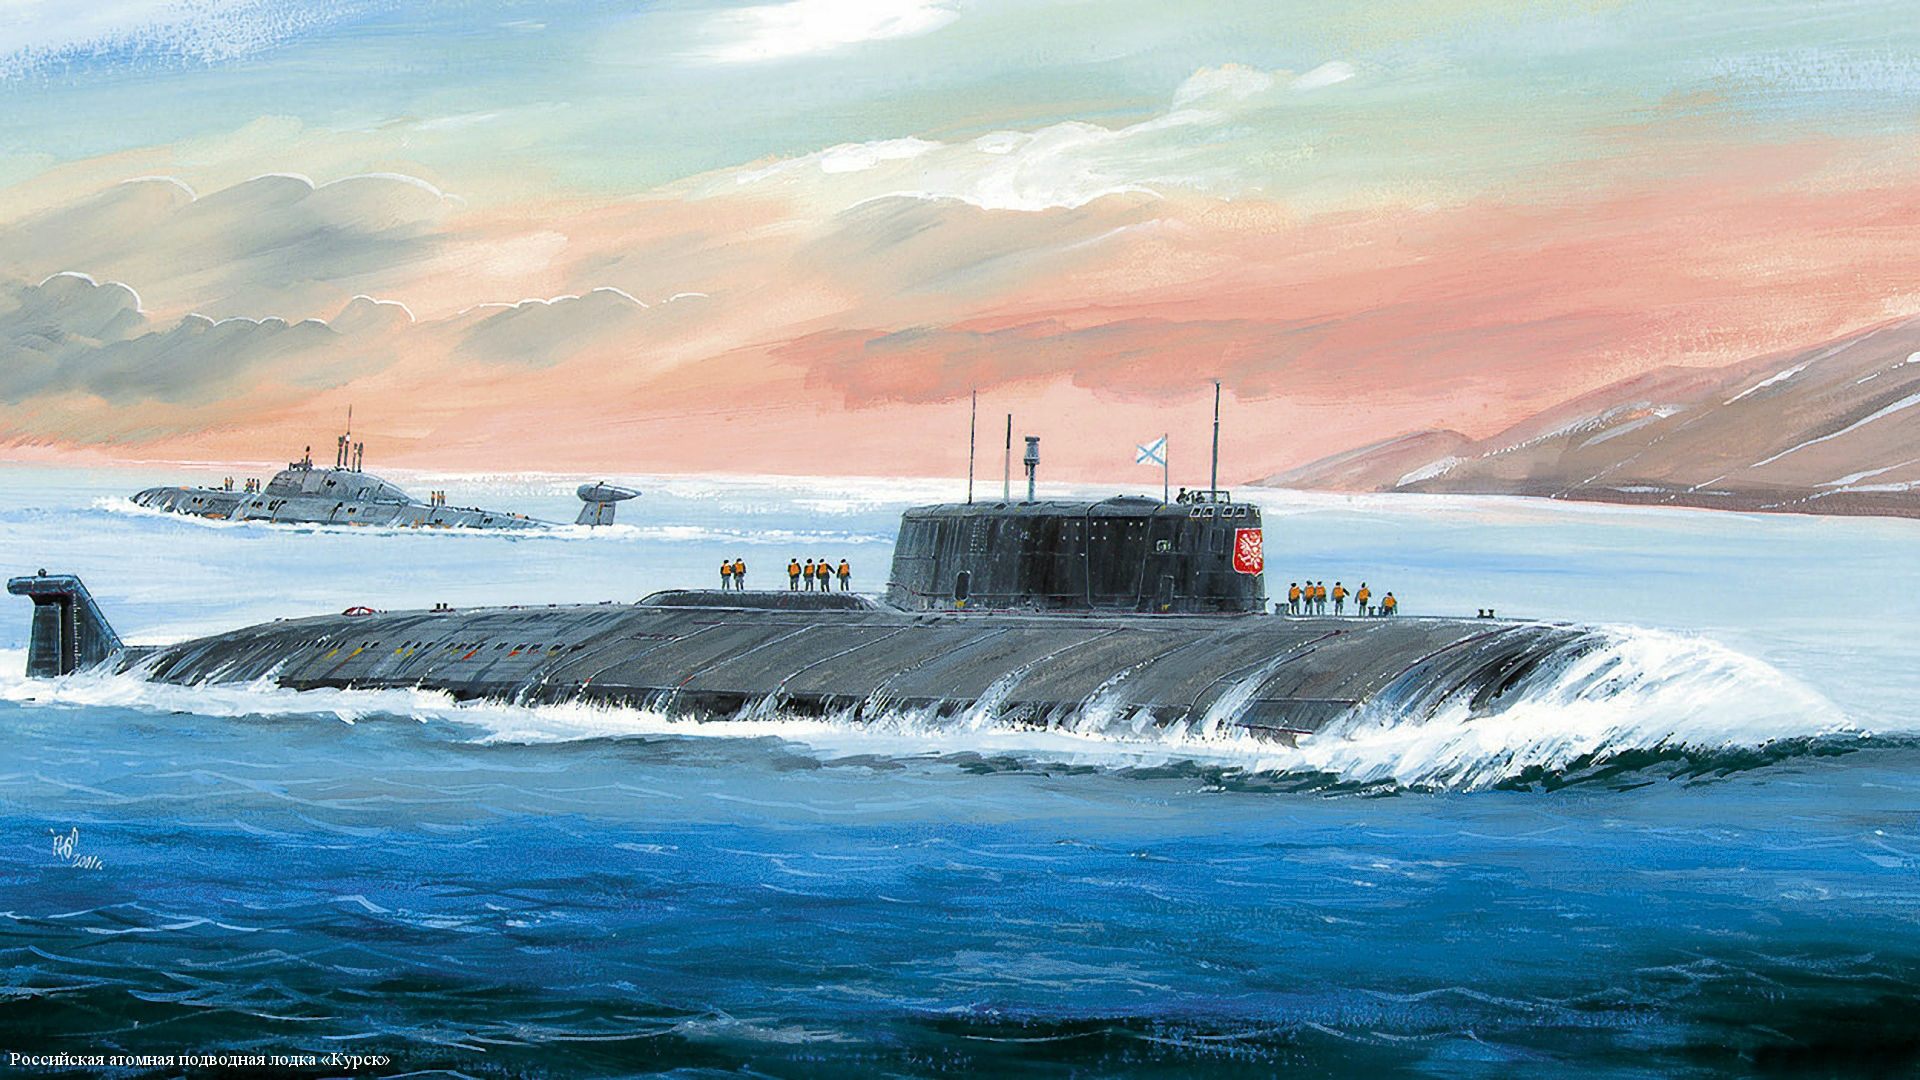 Submarine Kursk wallpapers and images   wallpapers pictures photos 1920x1080